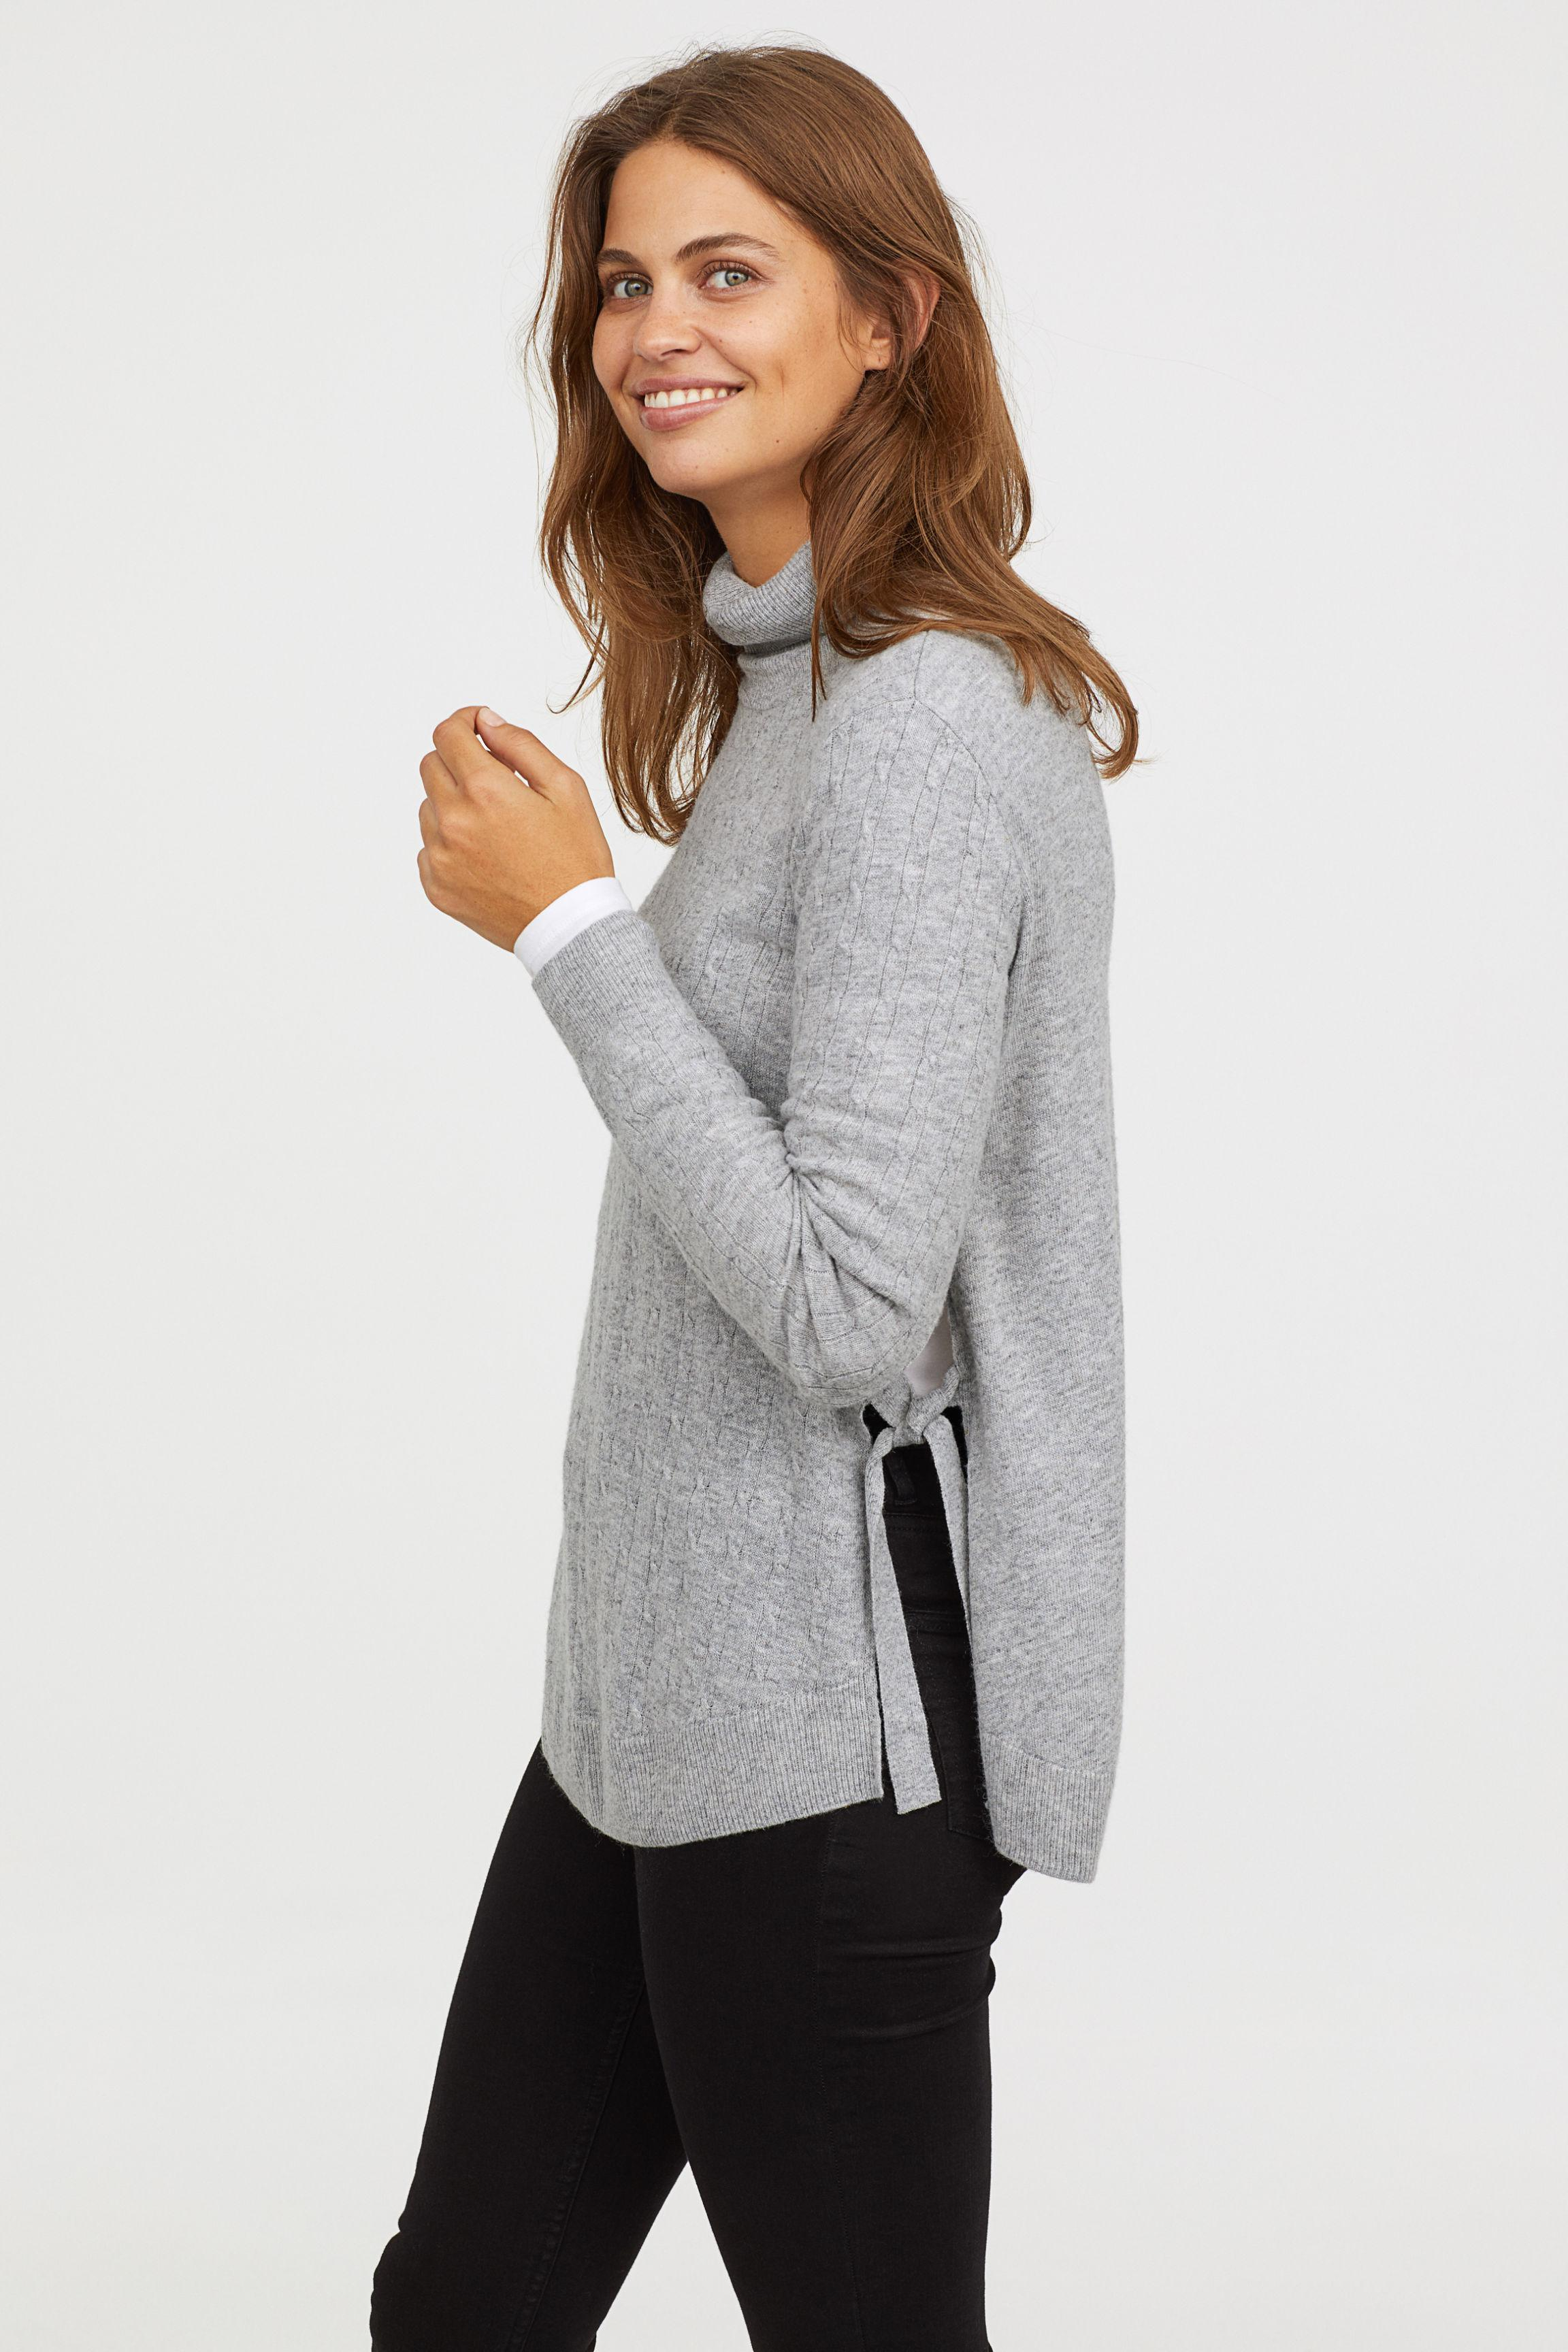 819d61e837285 H&M Mama Knit Nursing Sweater in Gray - Lyst